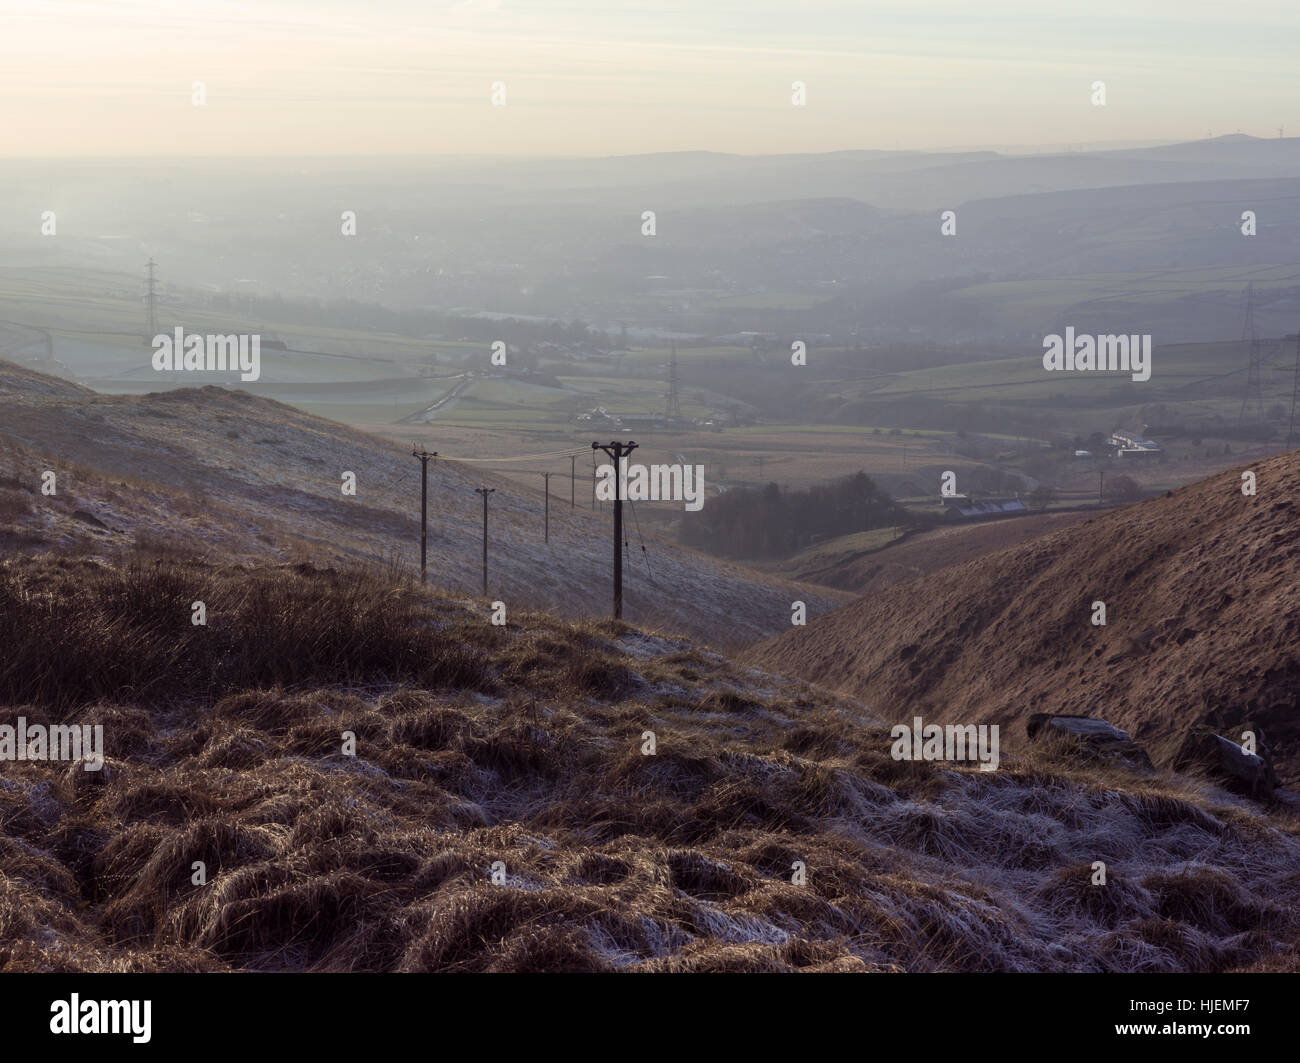 Landscape Photography Taken In The North Of England Using A Medium Stock Photo Alamy